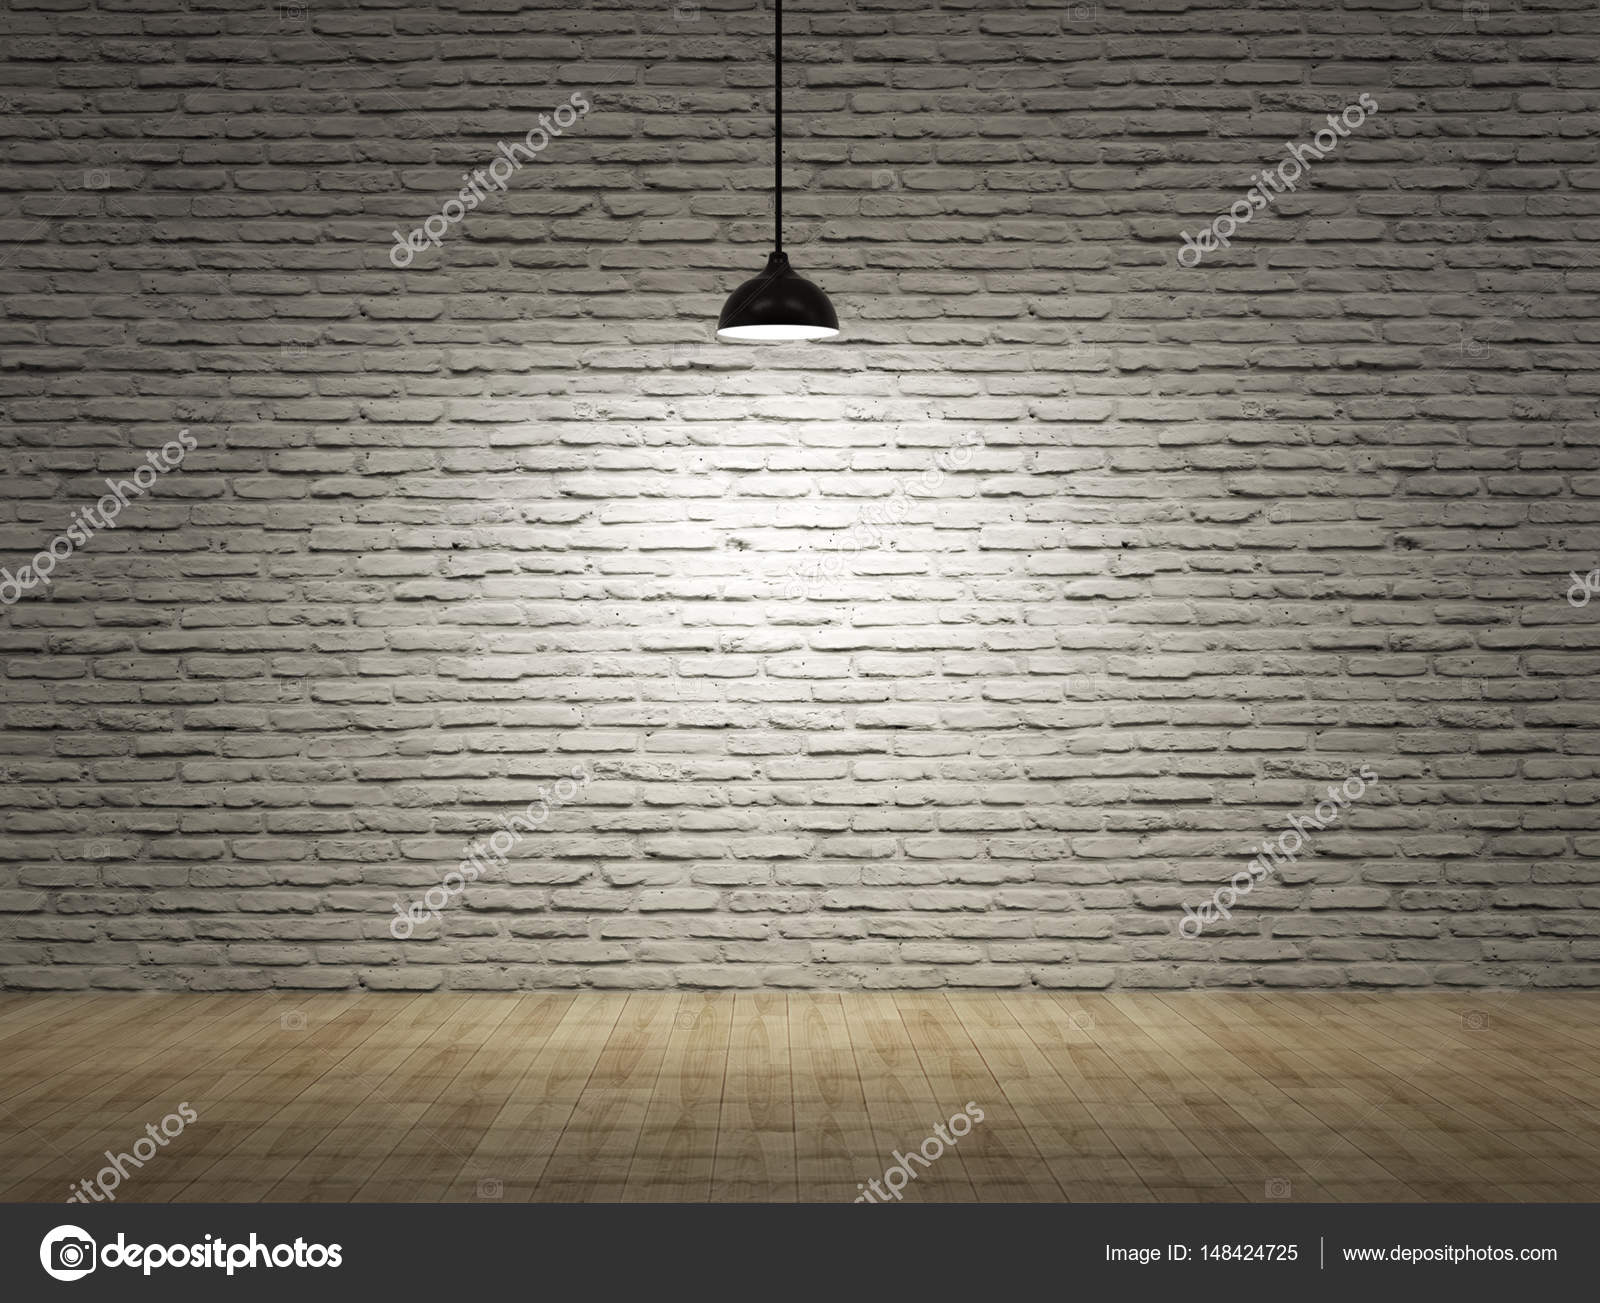 Brick wall lighting Conduit Ceiling Lamp With Brick Wall And Wood Floor Stock Image Dreamstimecom Ceiling Lamp With Brick Wall And Wood Floor Stock Photo Bruesw